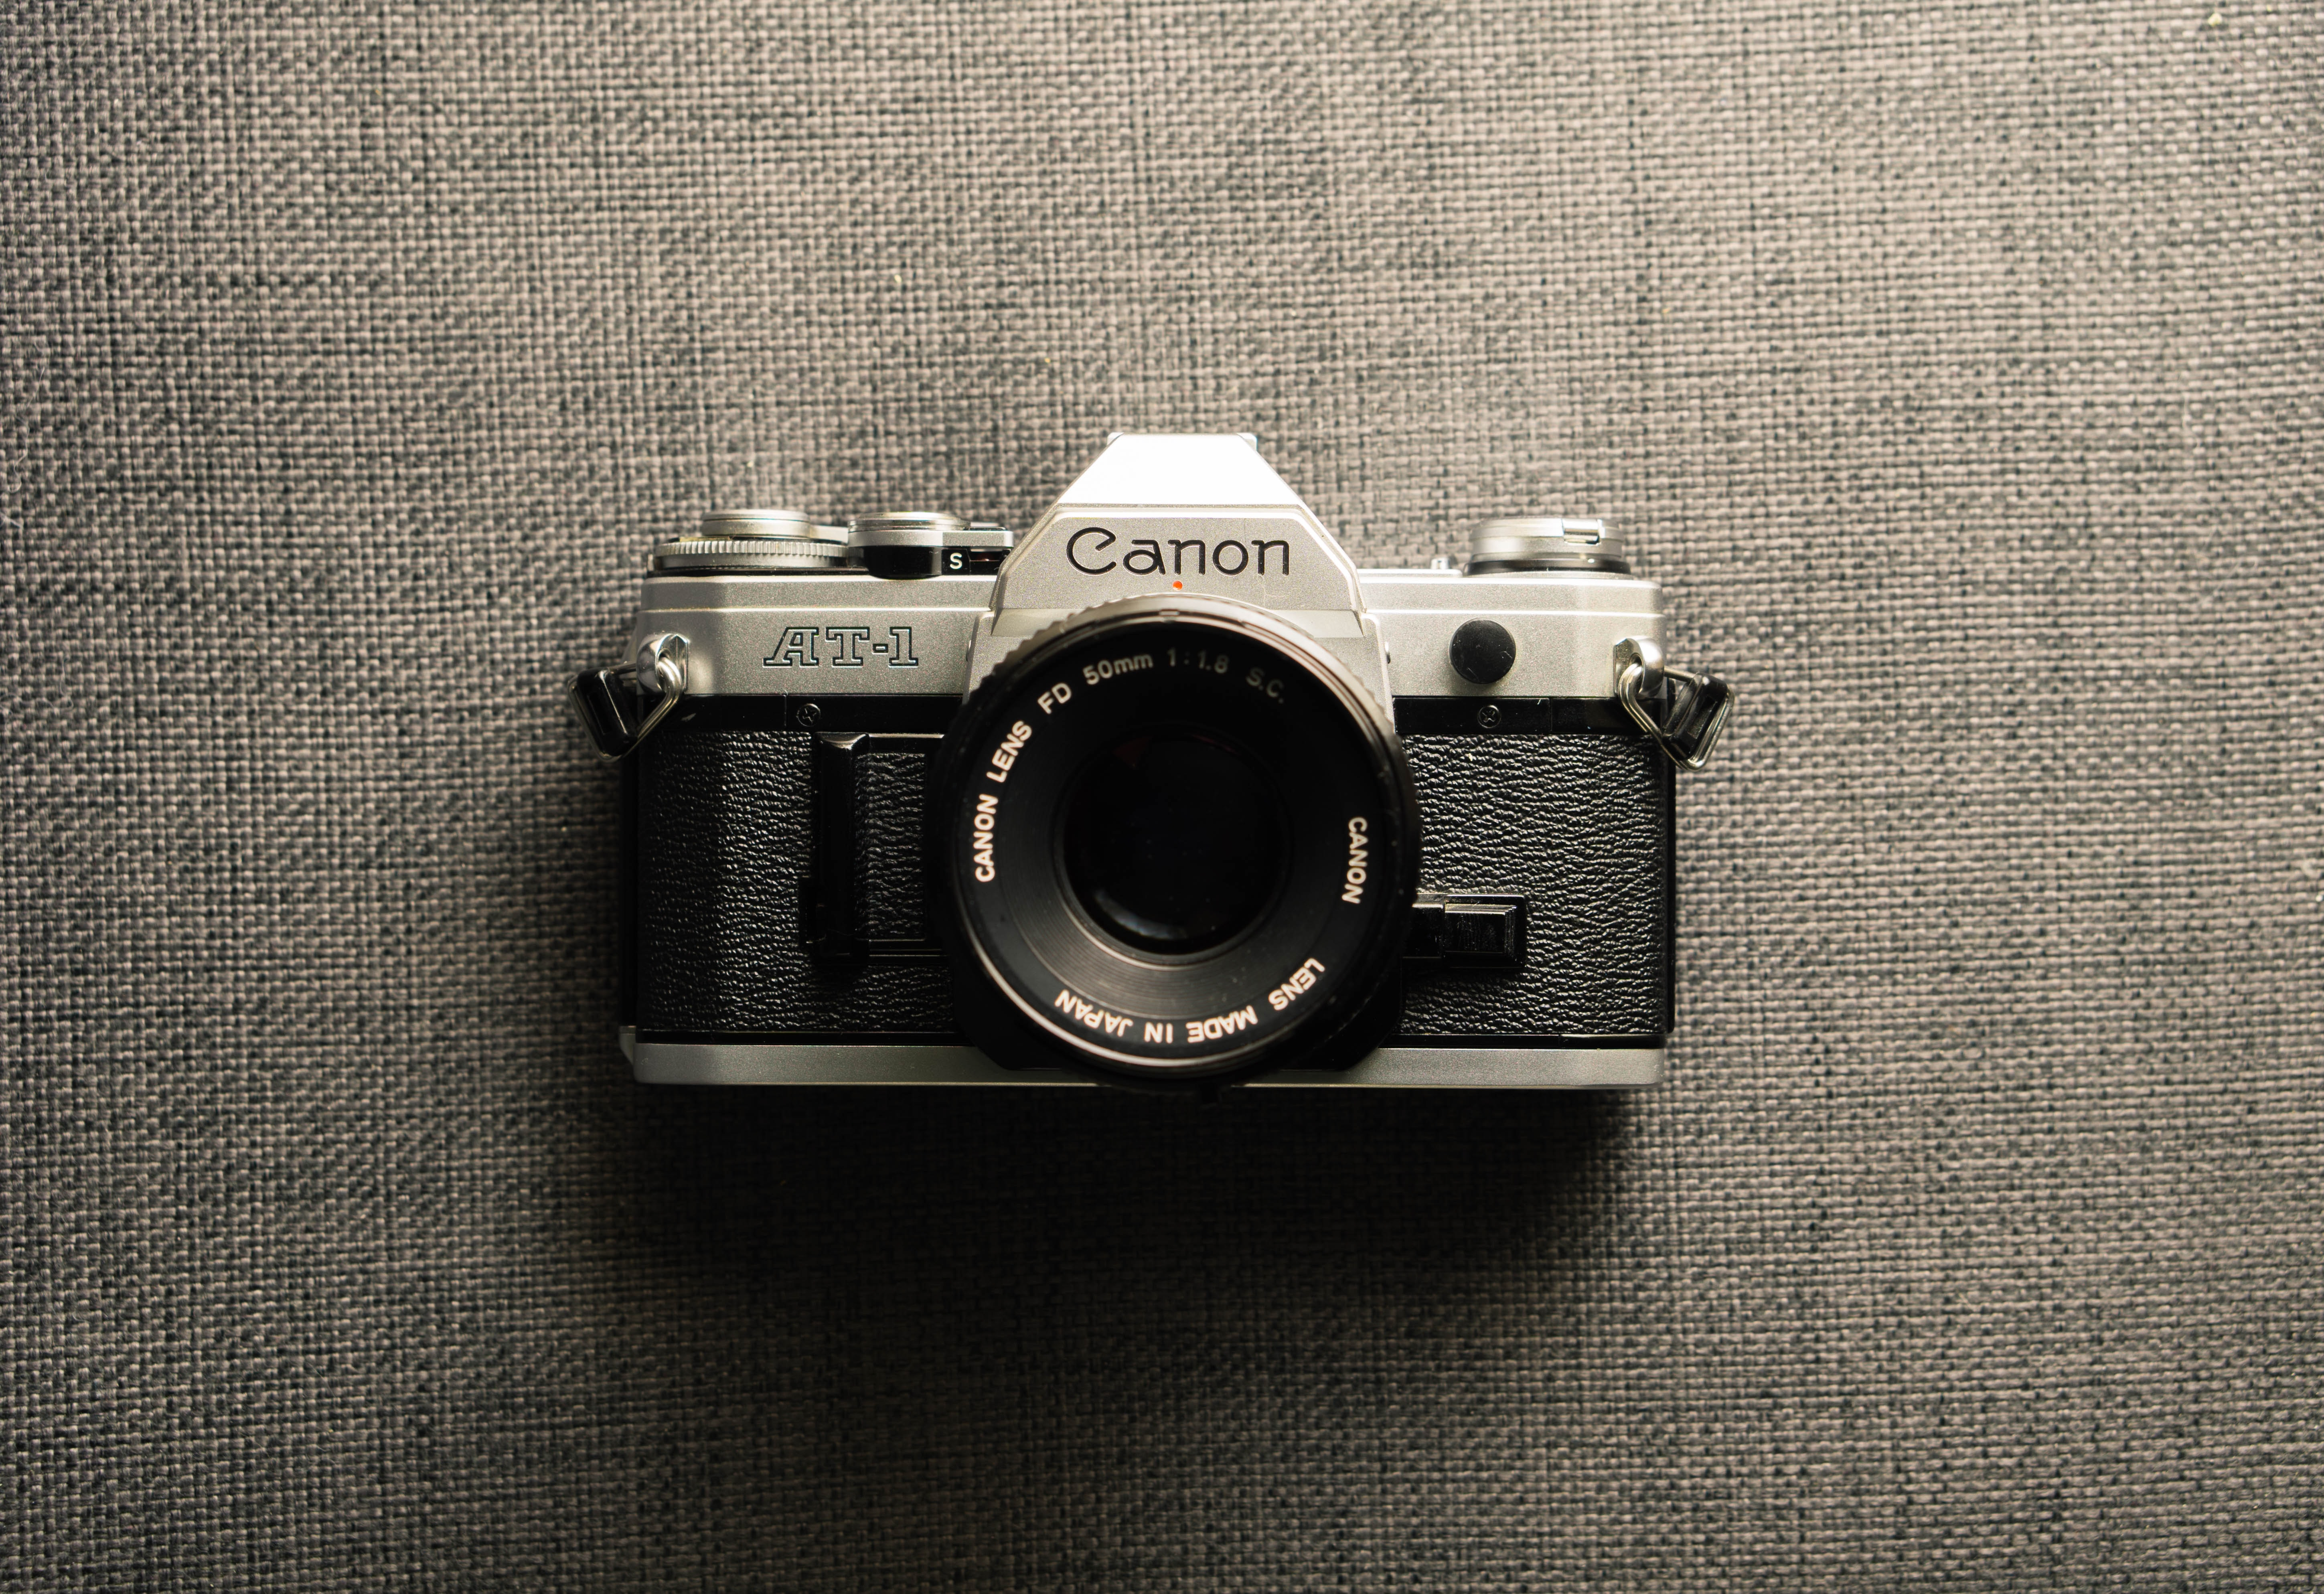 Canon AT-1 vintage camera on a gray fabric